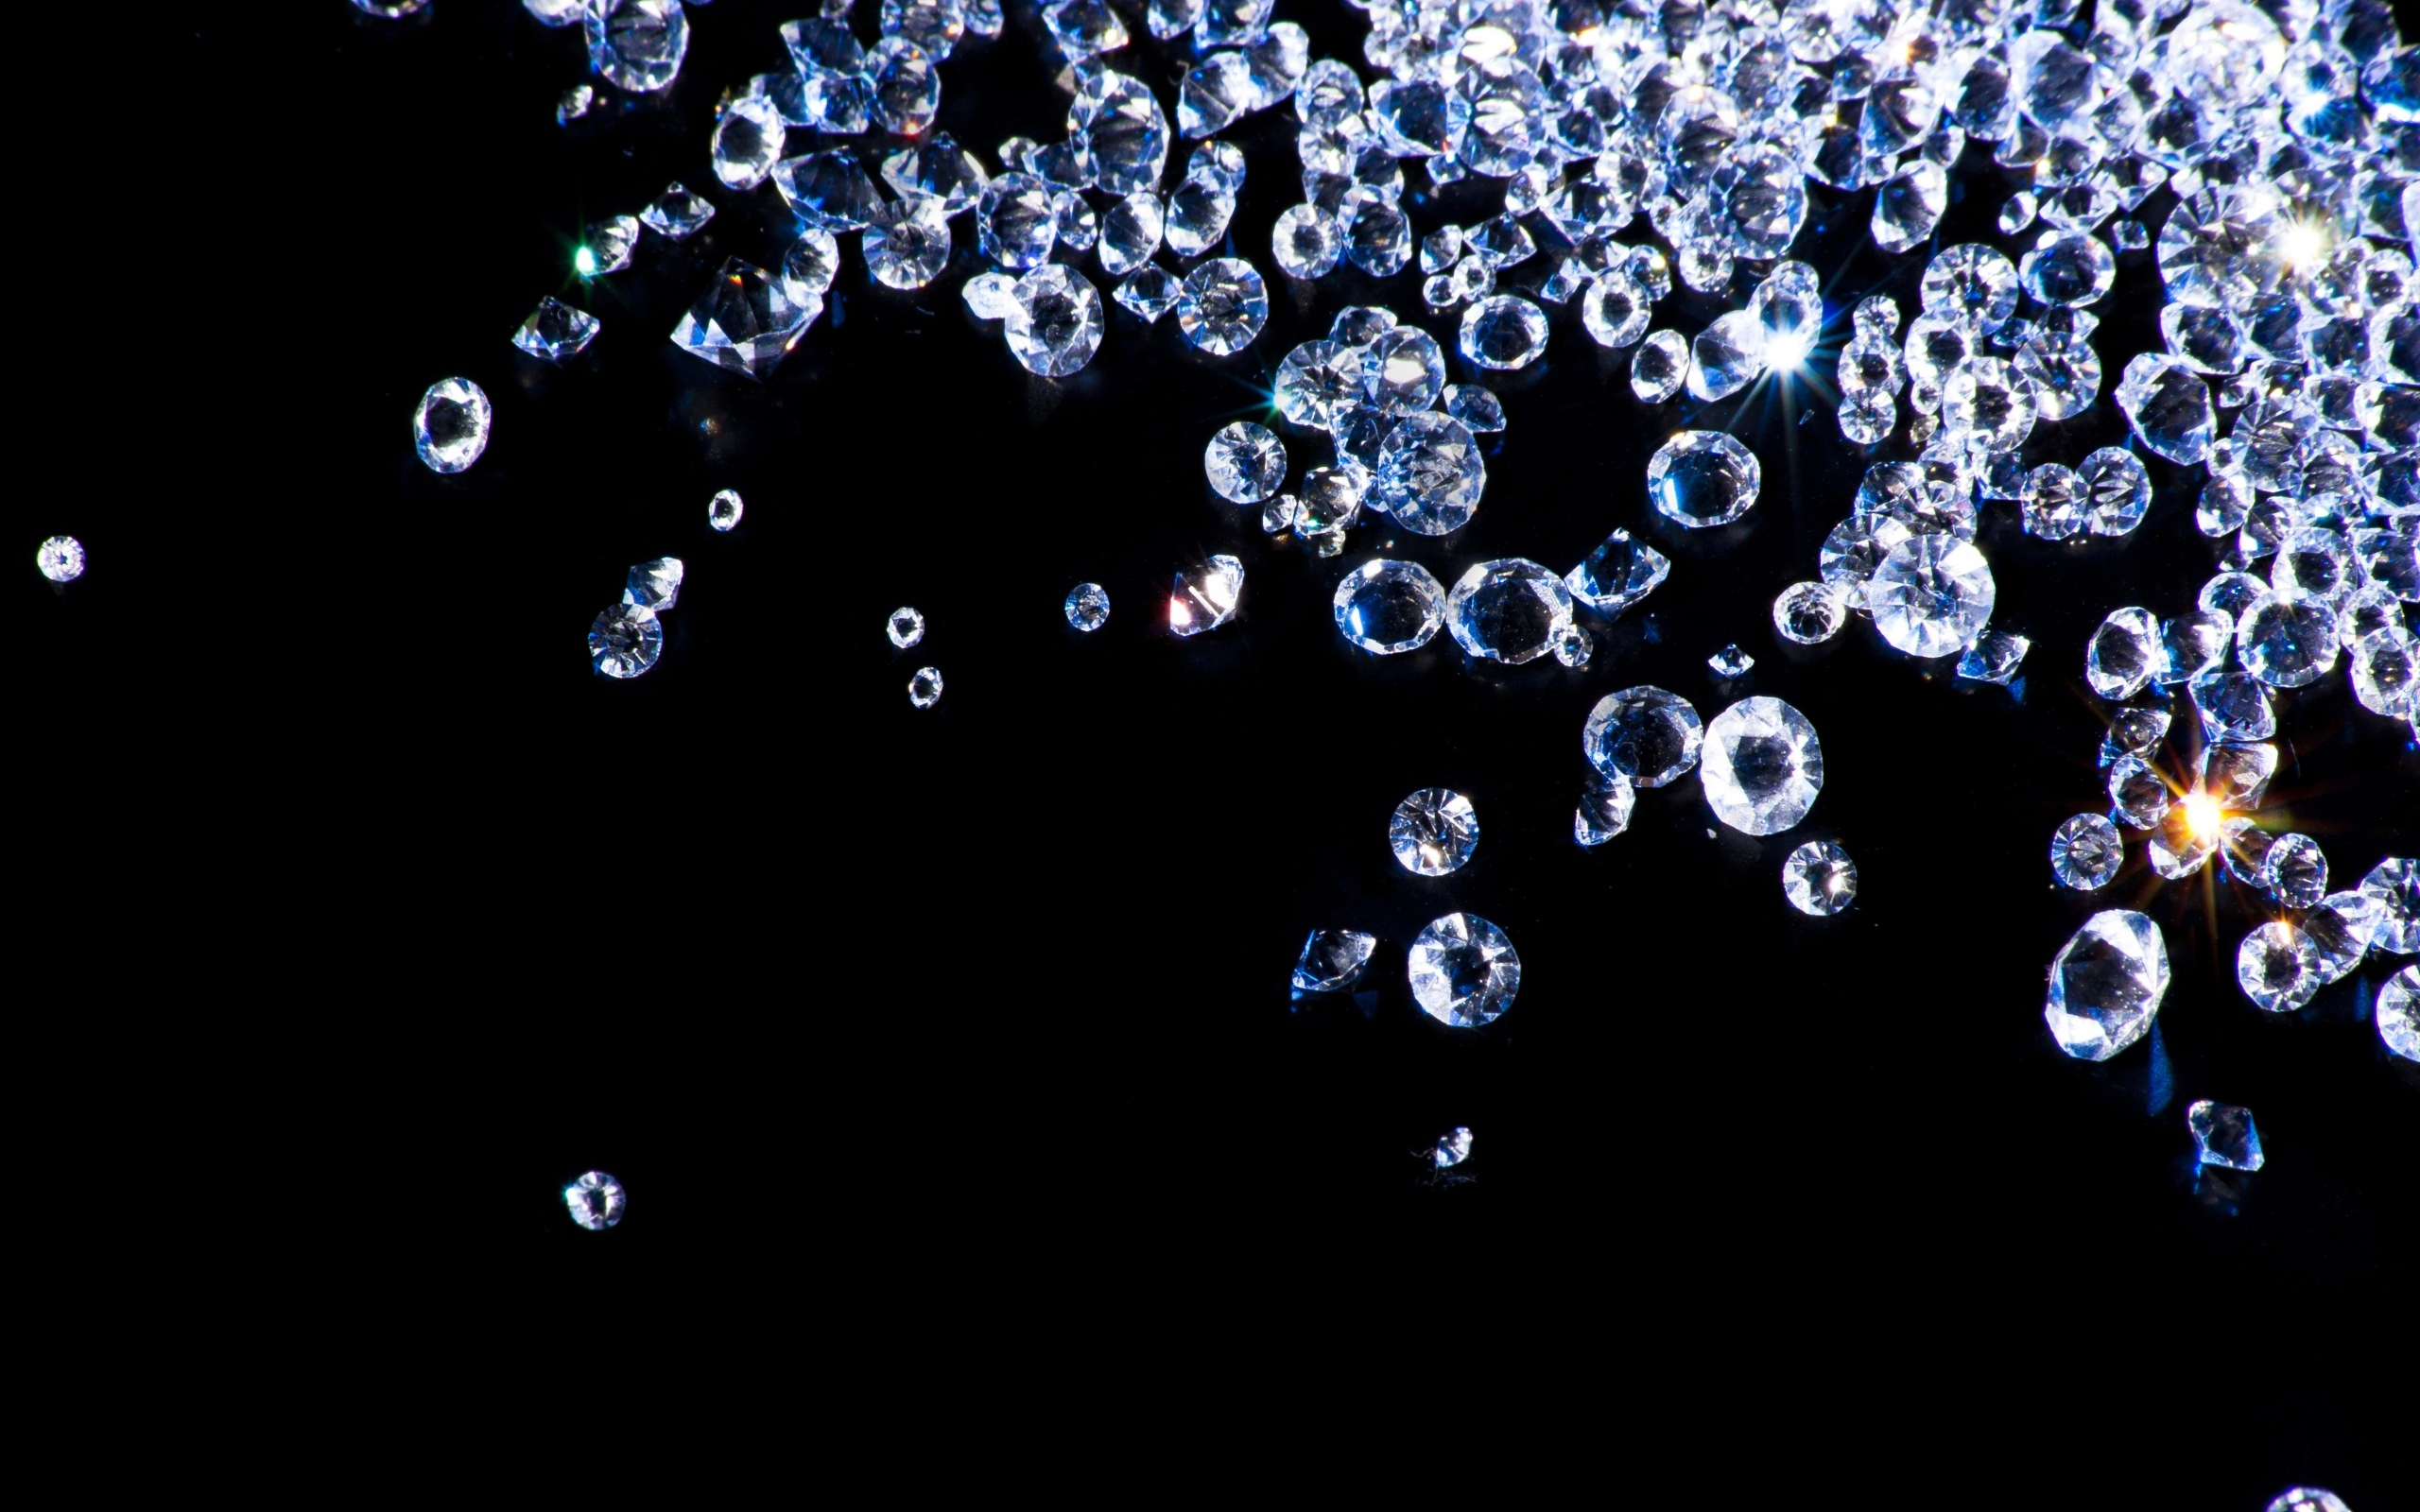 Sprinkle of diamonds wallpapers and images   wallpapers pictures 2560x1600